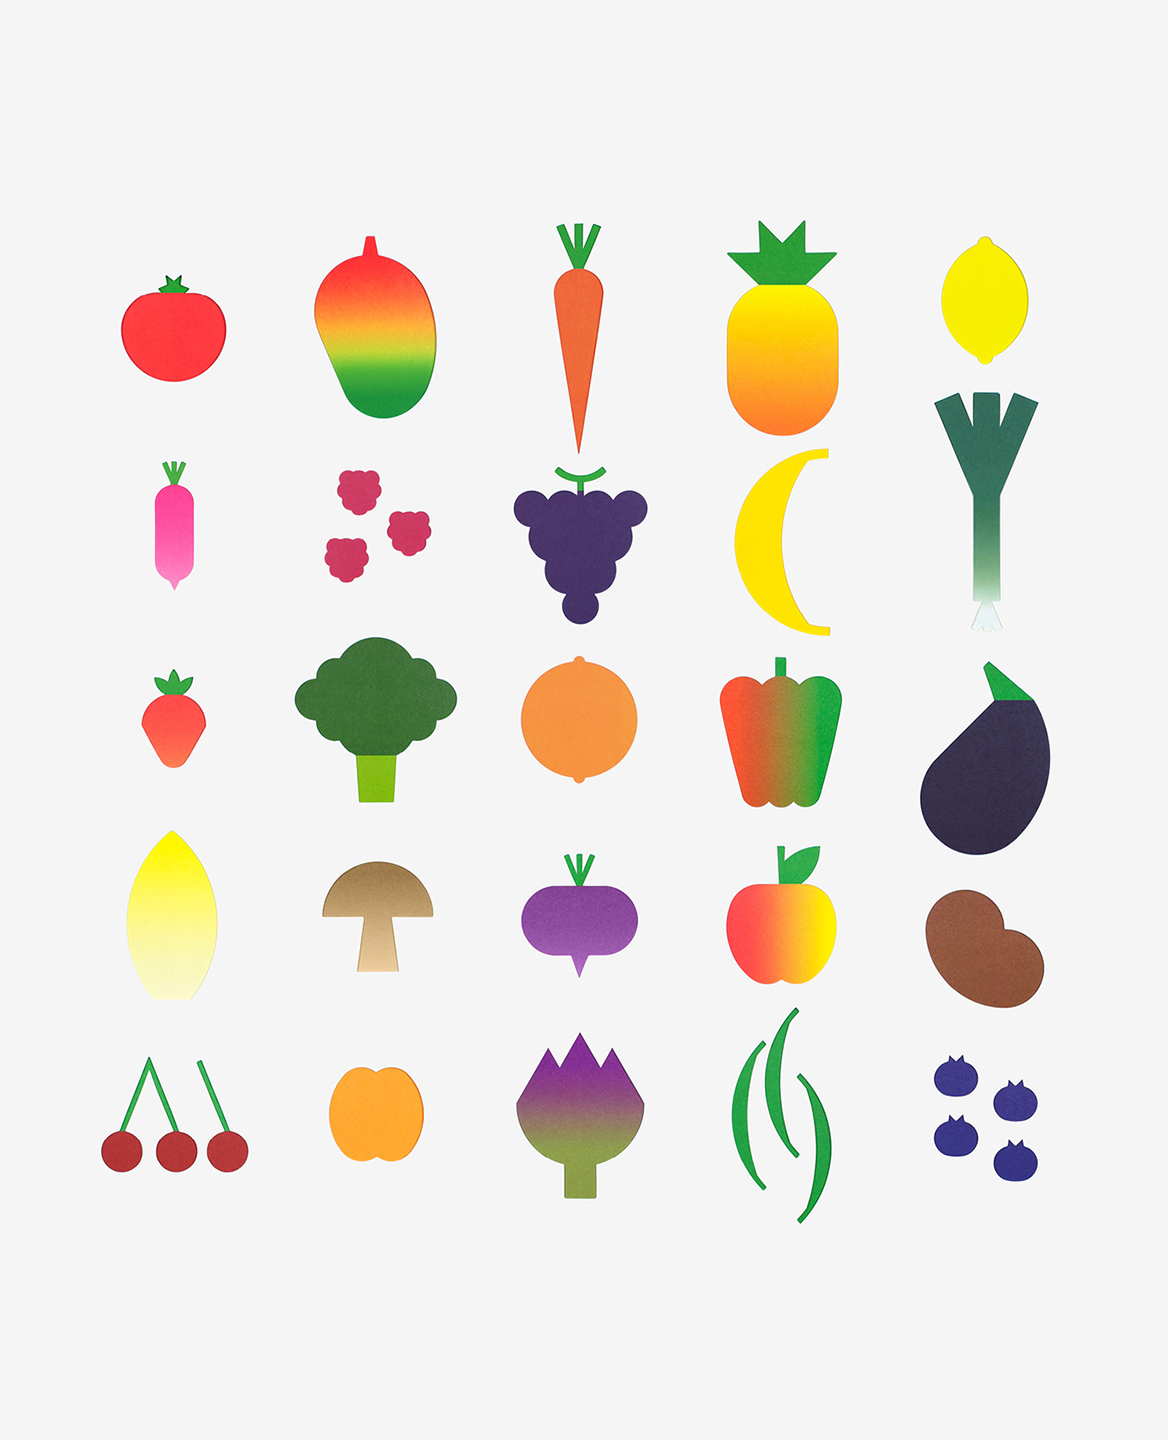 25 fruits and vegetables from the book-game Hello tomato